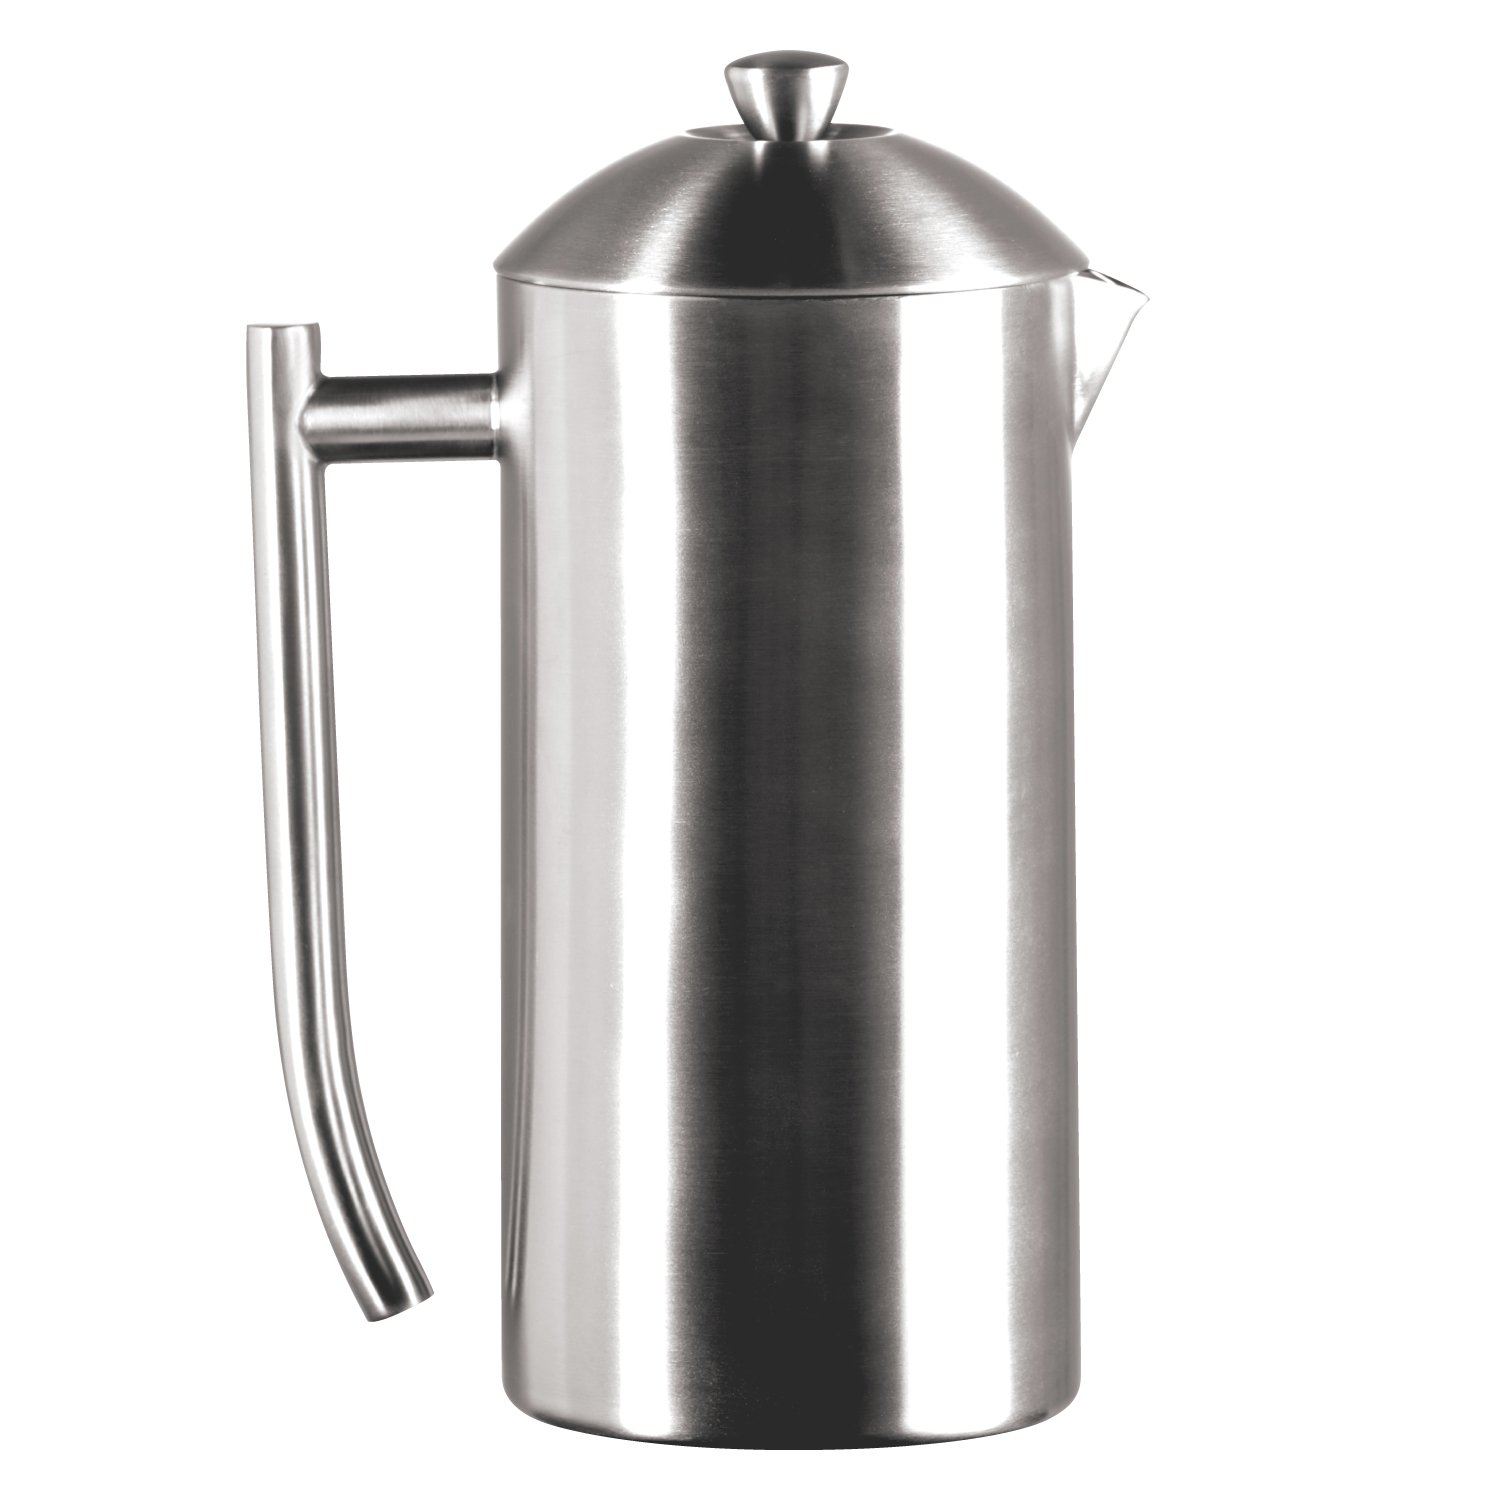 Frieling USA Double Wall Stainless Steel French Press Coffee Maker with Patented Dual Screen, Brushed 36-Ounce by Frieling